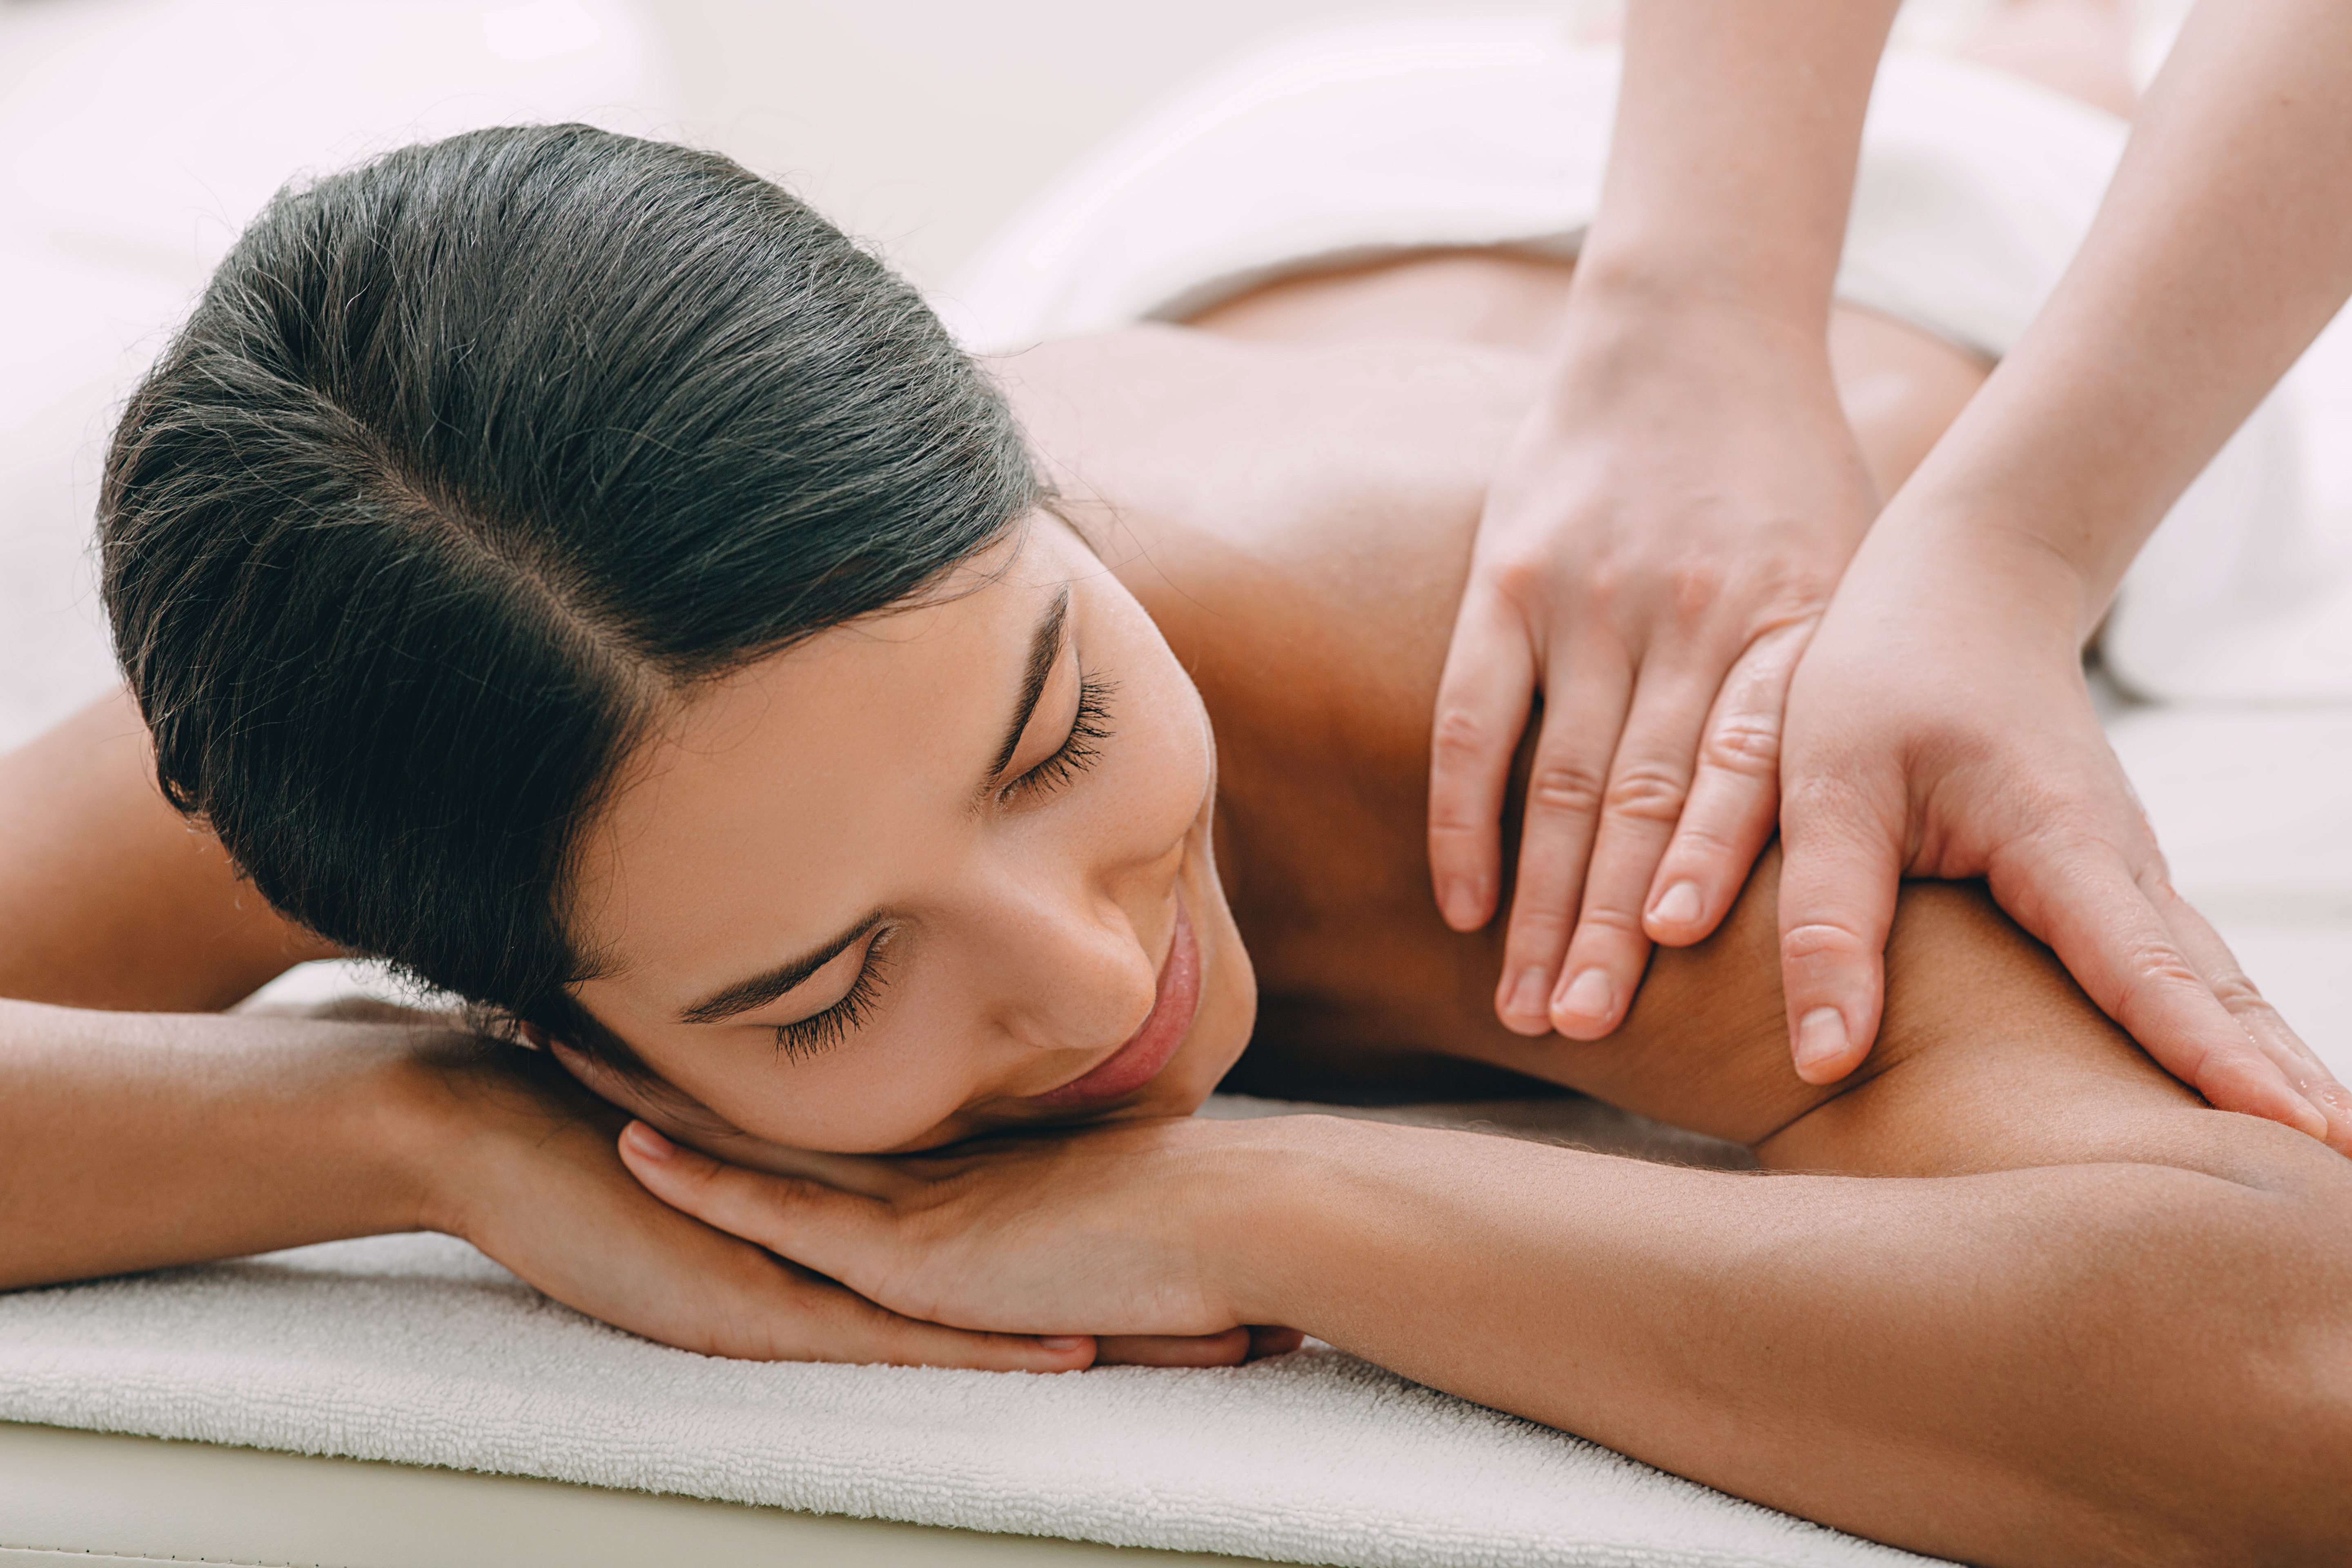 Massage Therapy for a Better Night's Sleep